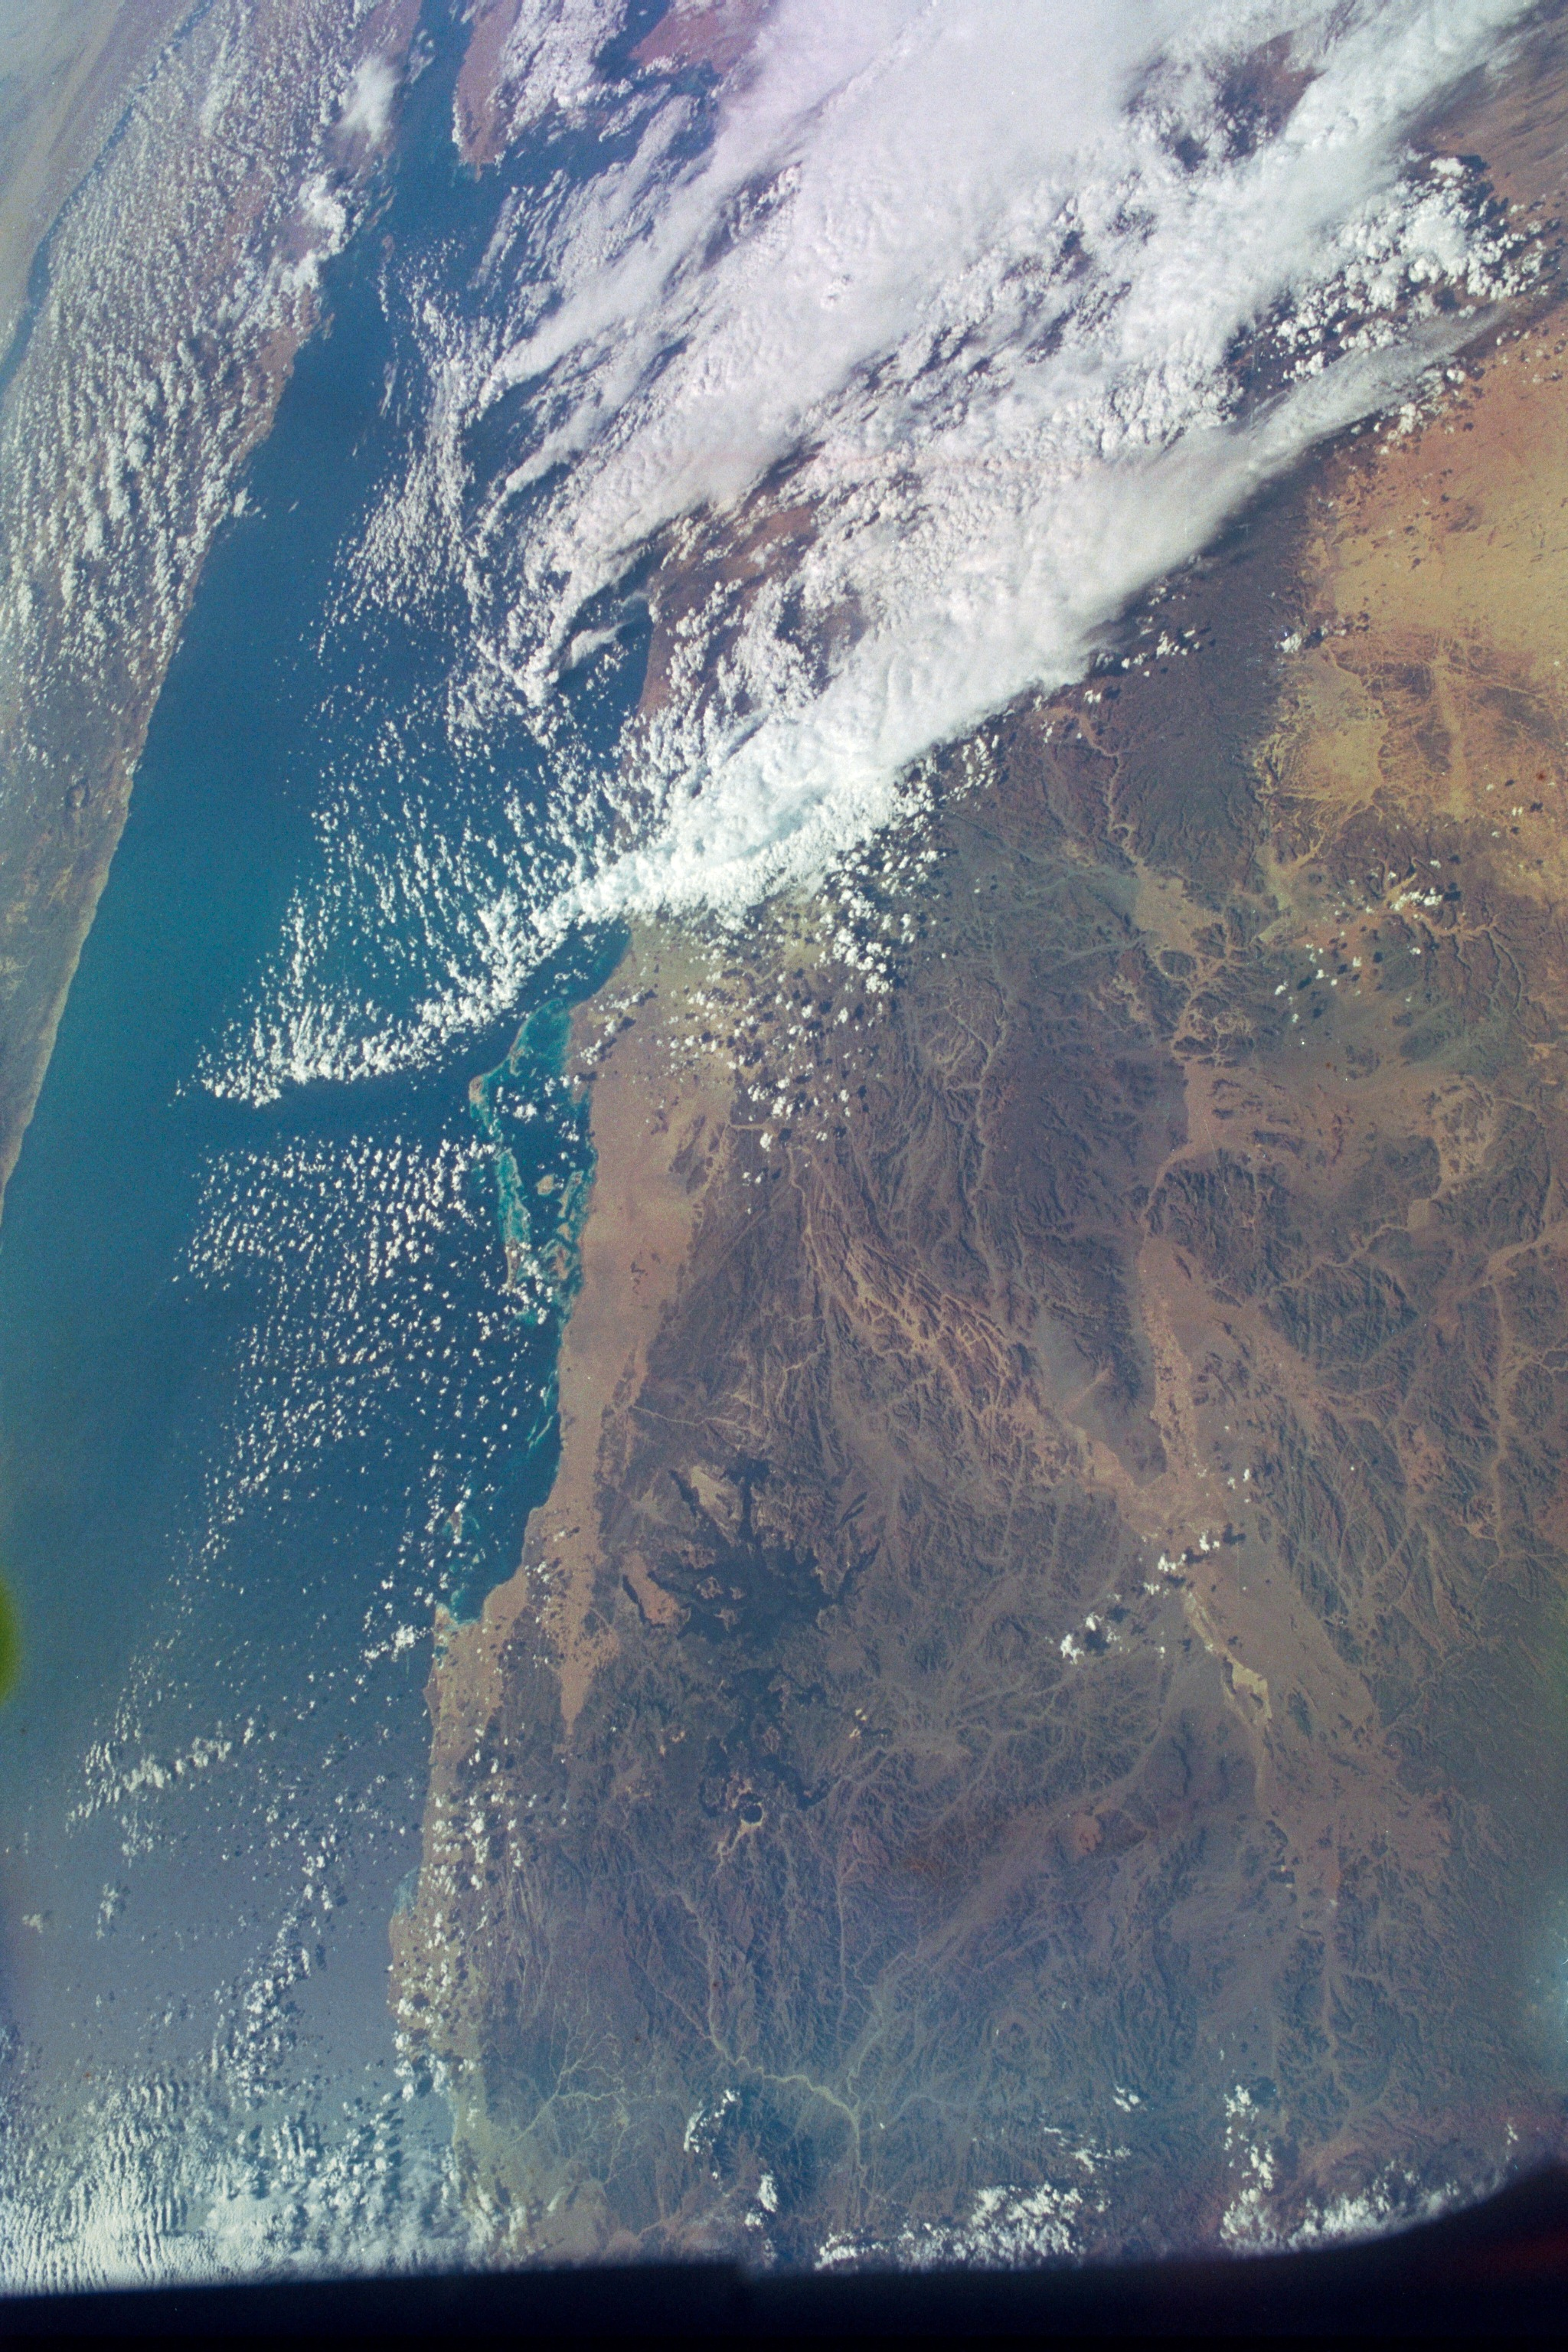 Earthview of Saudi Arabia, the Red Sea, Egypt, and the Nile River